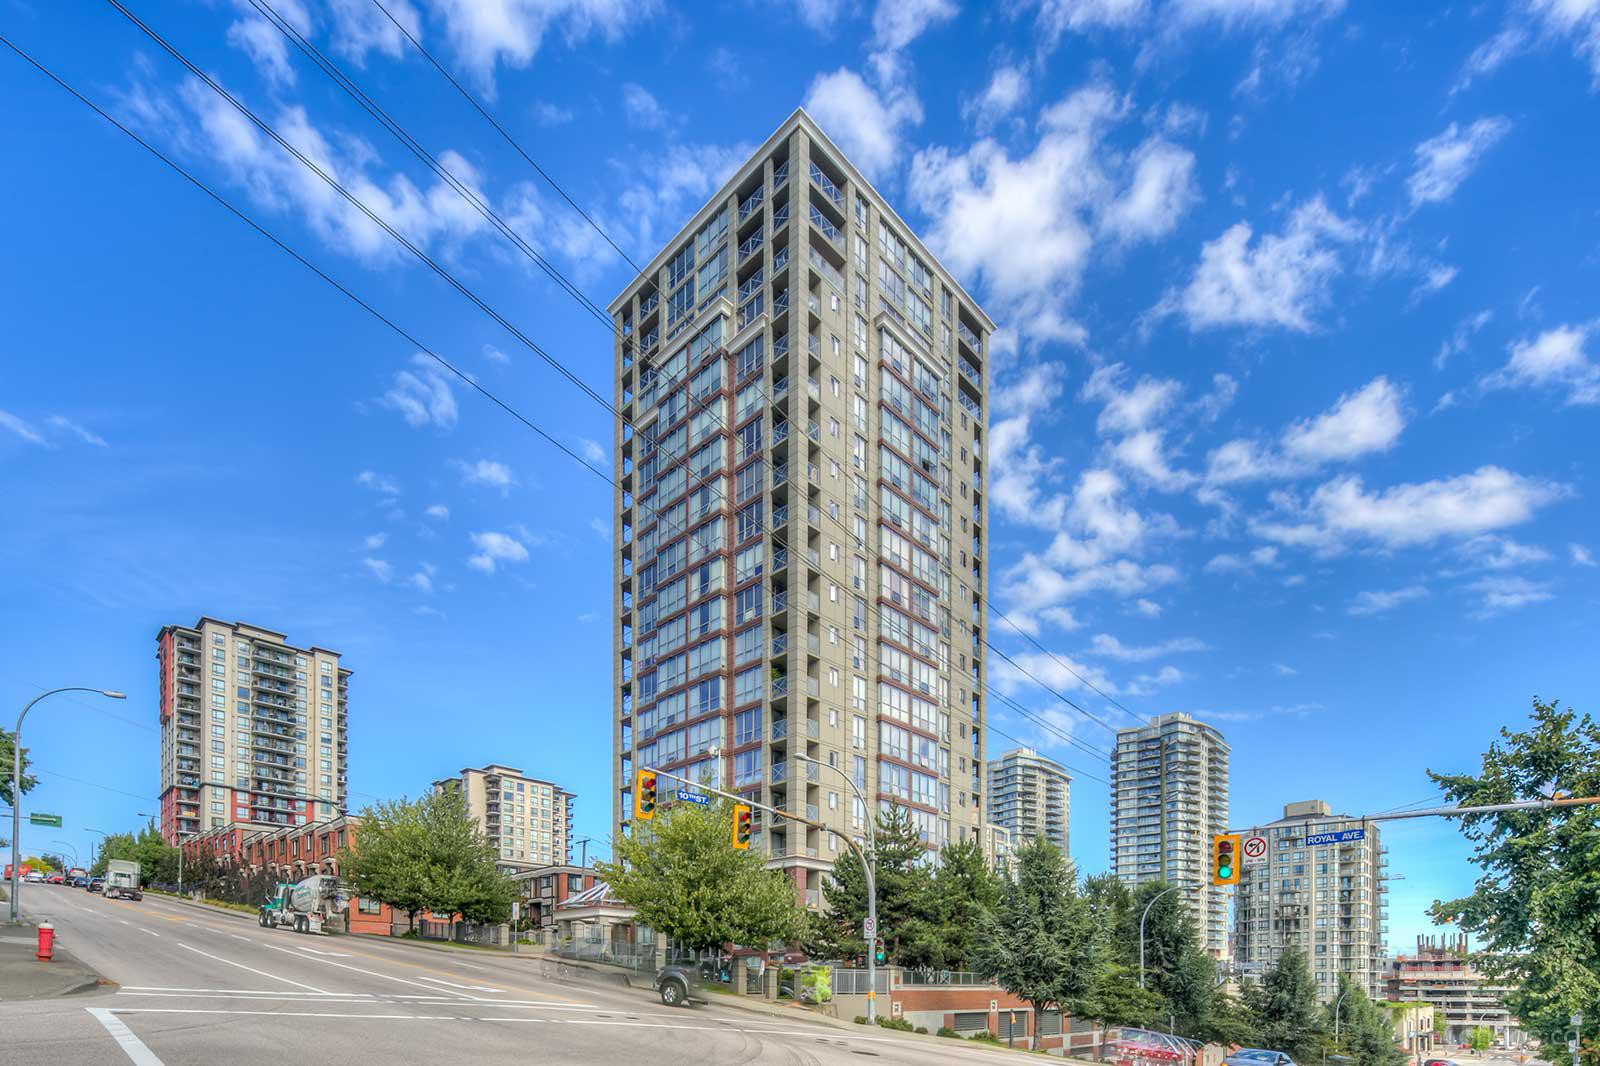 The Royalton at 850 Royal Ave, New Westminster 1